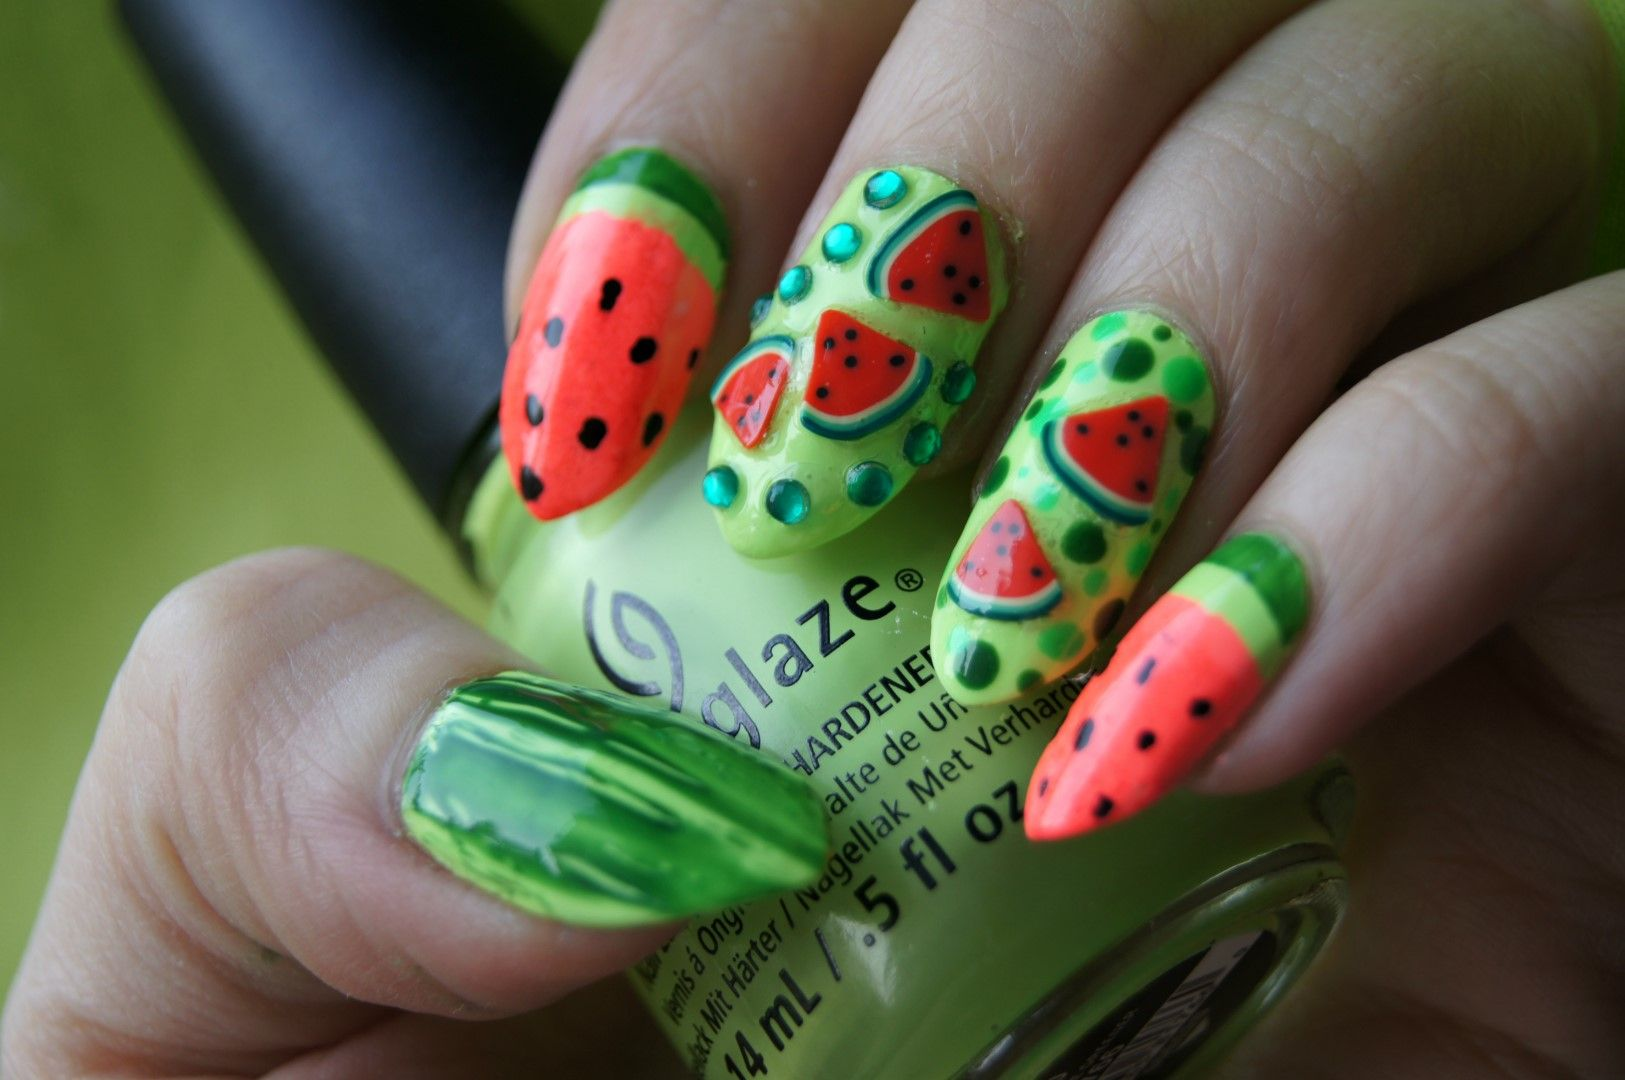 15 Fruit Nail Designs to Make a Summer Manicure | Fruit nail designs ...